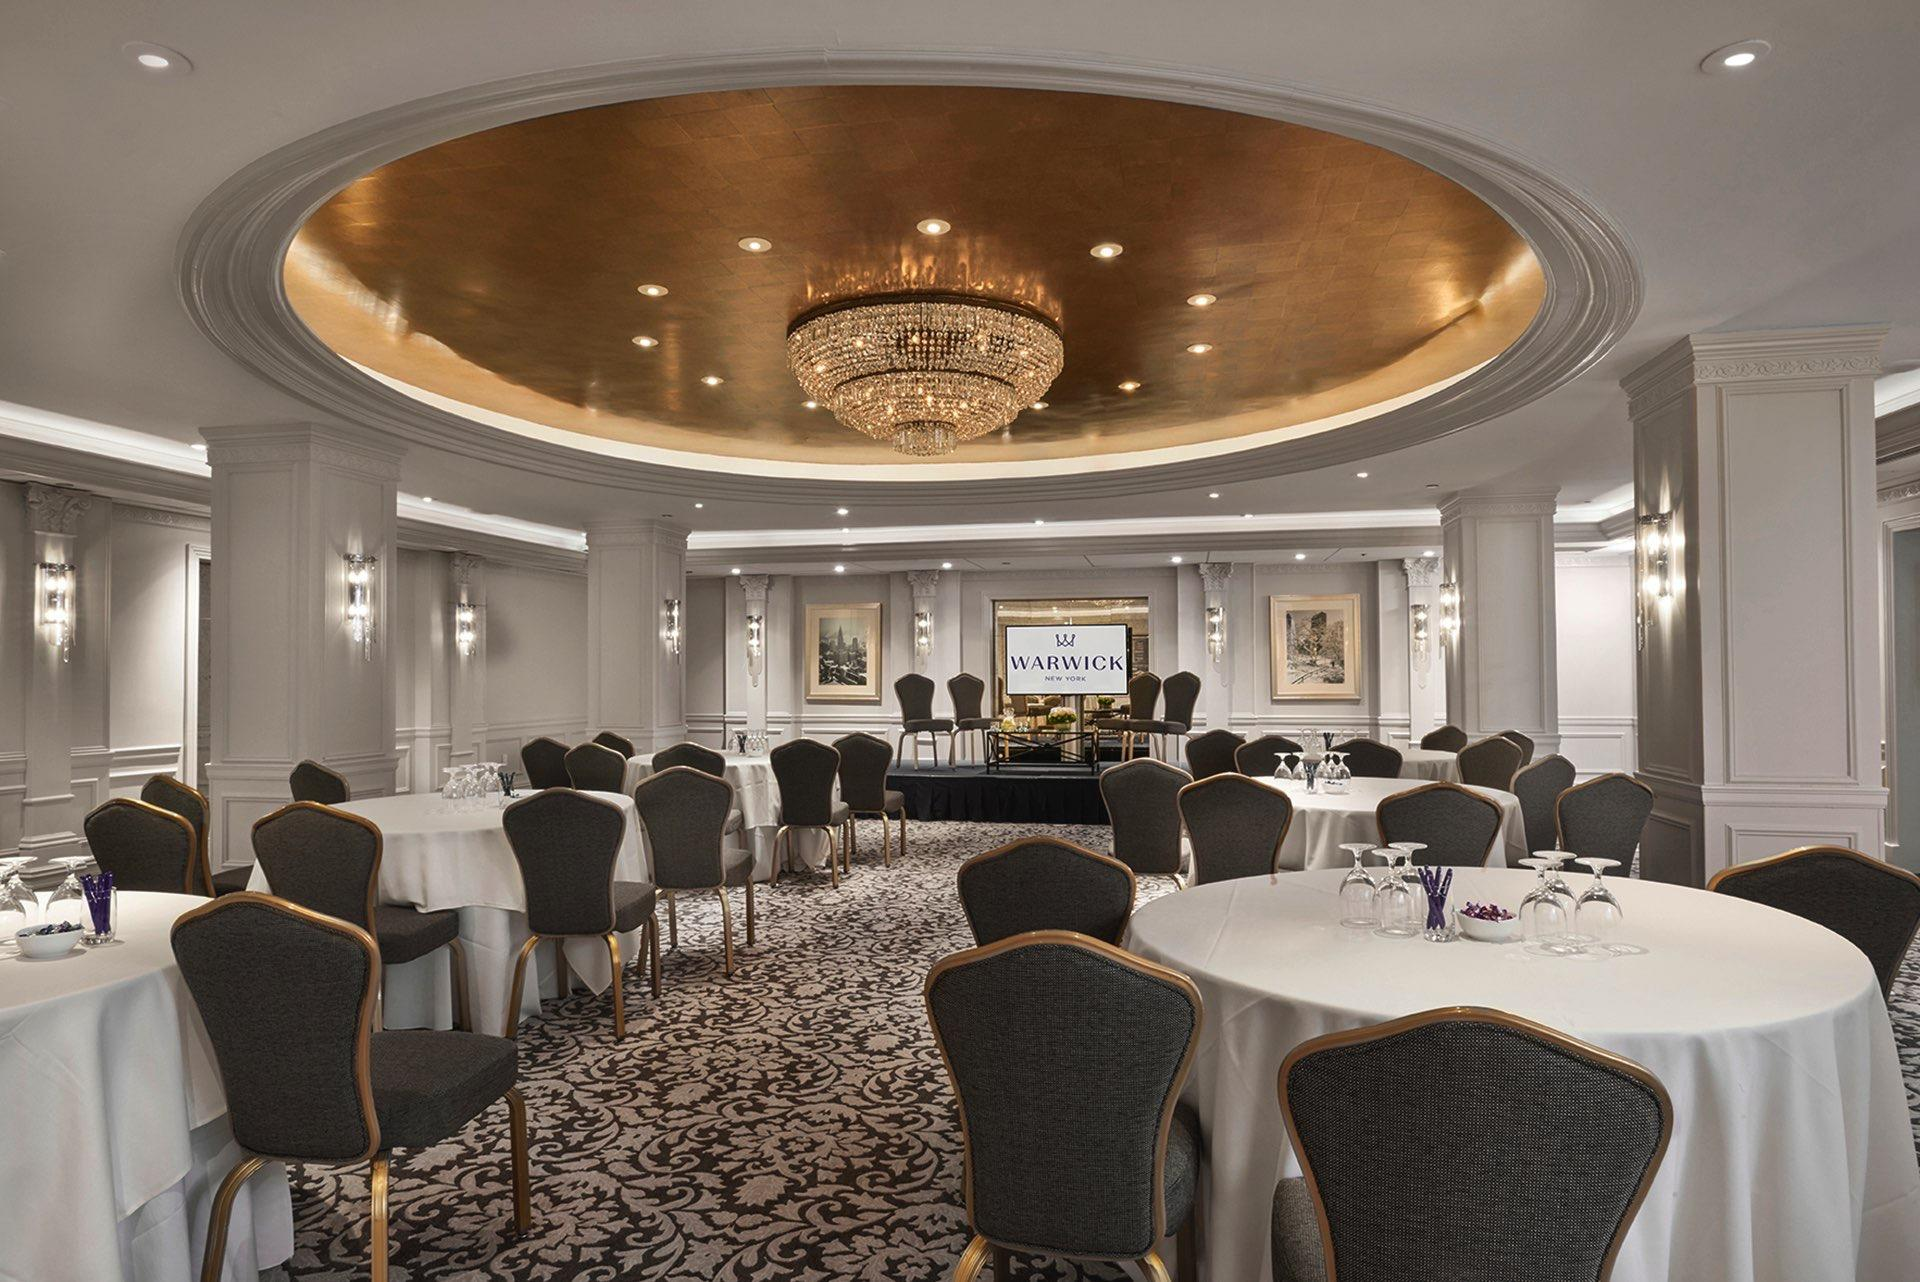 Warwick Meeting Room Cabaret at Warwick New York